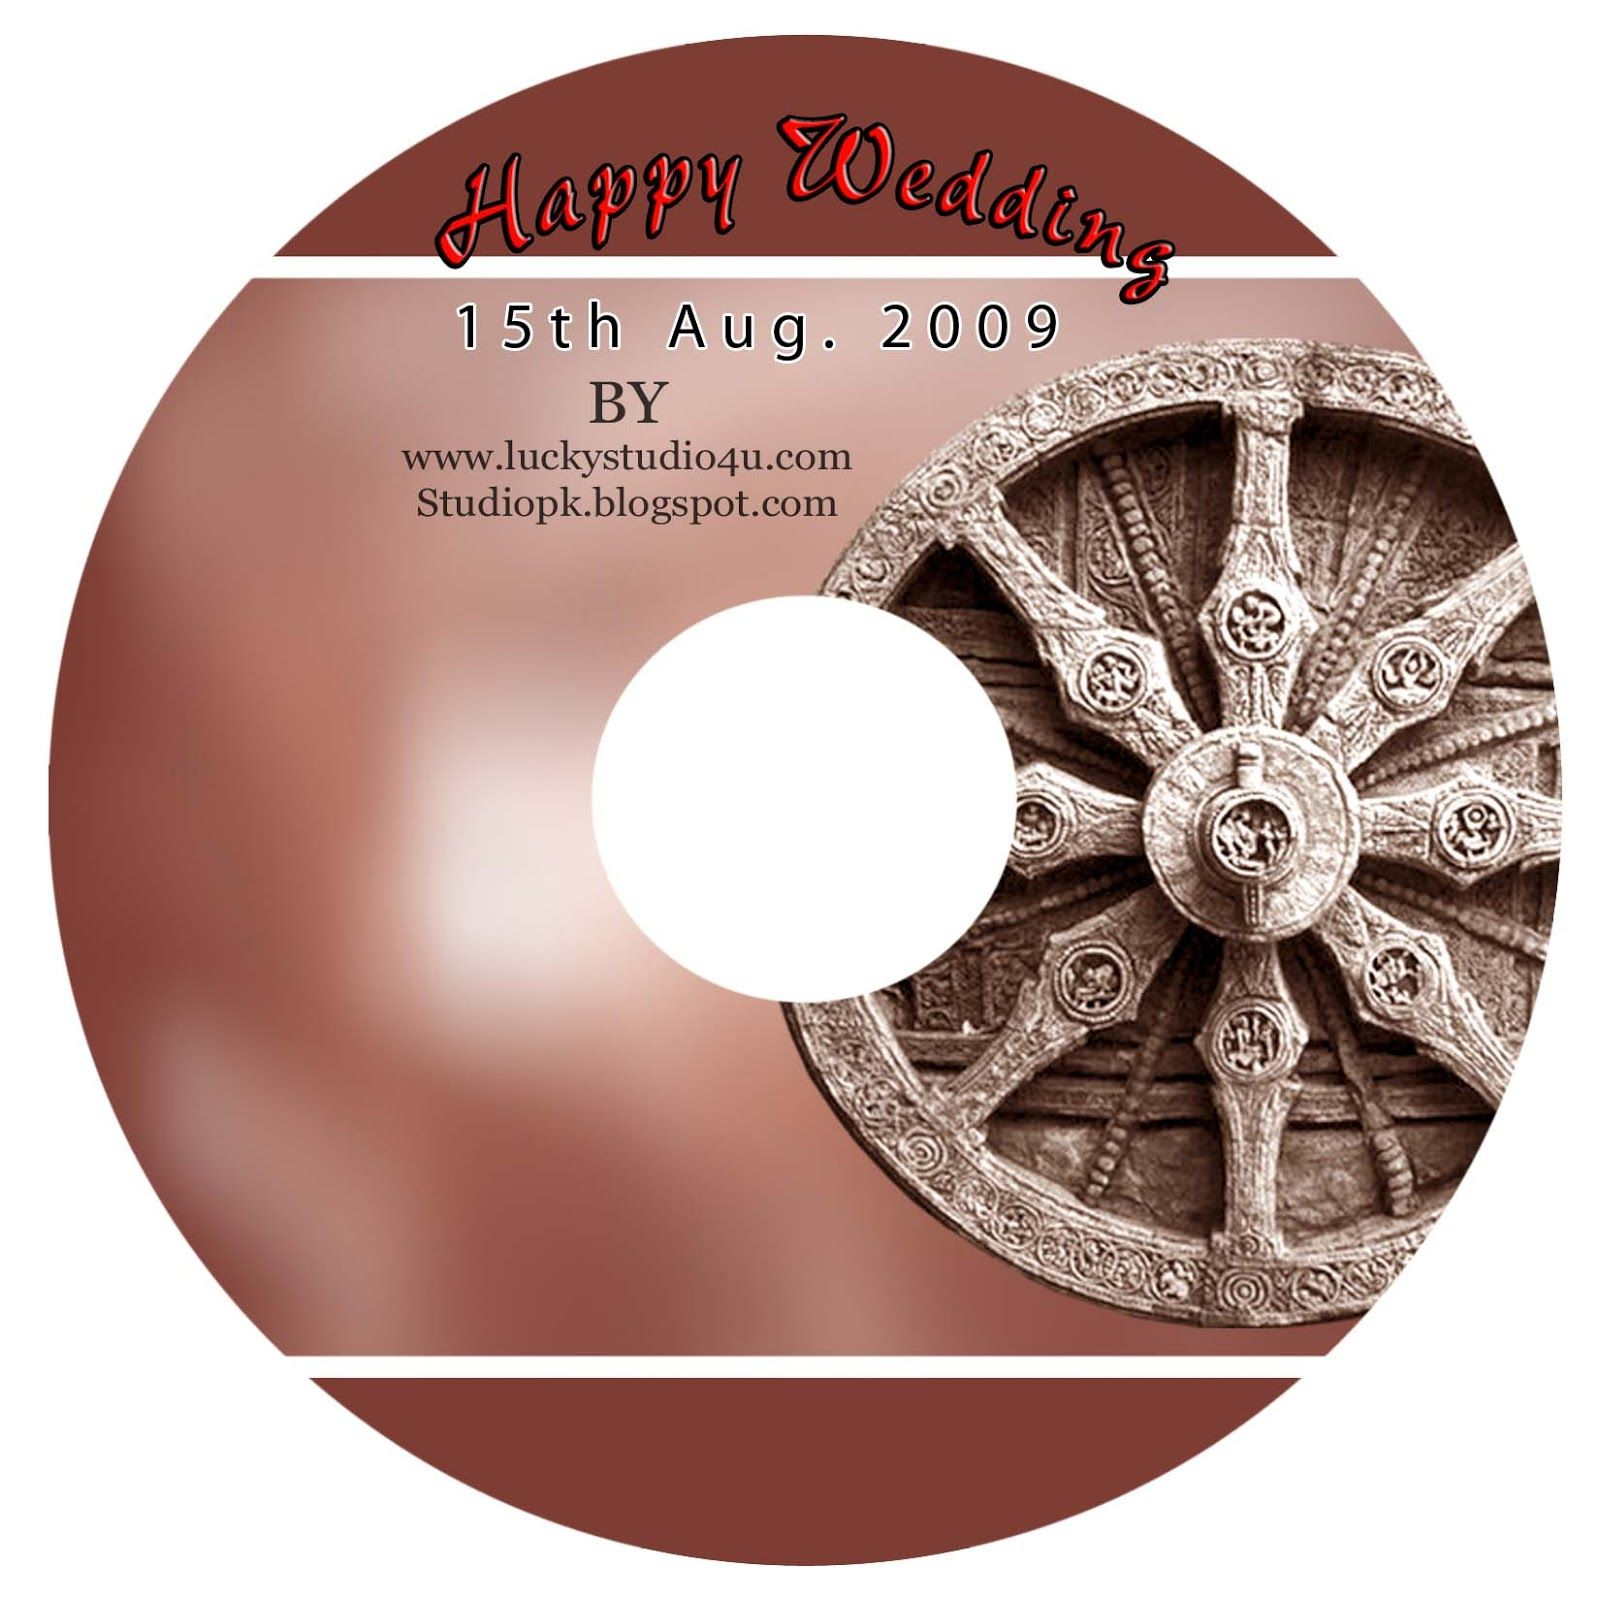 27 Wedding Dvd Cover Psd Templates Free Download With Images Wedding Dvd Cover Wedding Dvd Dvd Cover Template